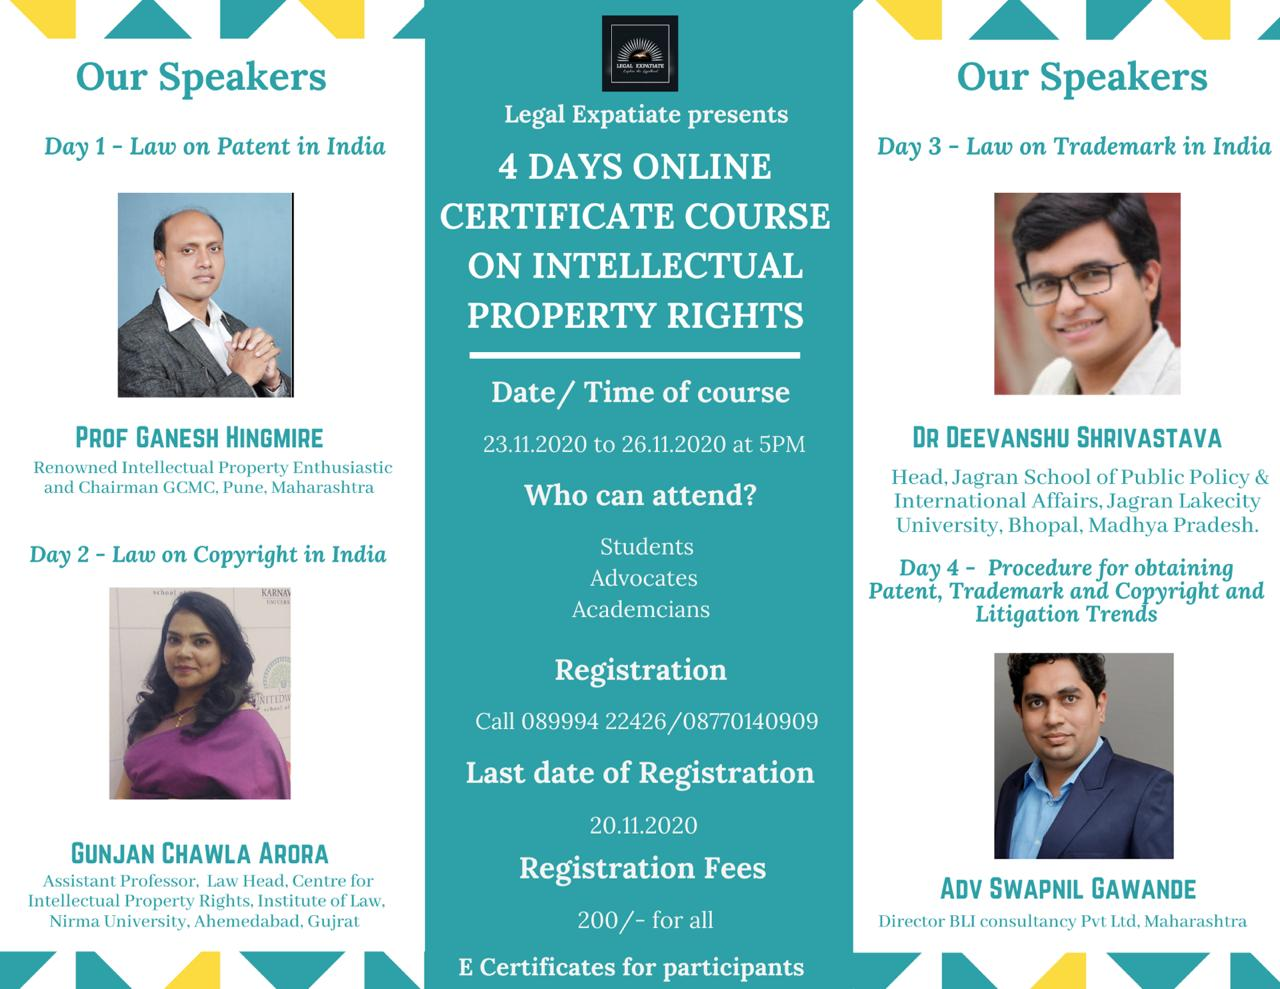 4 Days Online Certificate Course On Intellectual Property Rights From 23.11.2020 To 26.11.2020 At 5PM